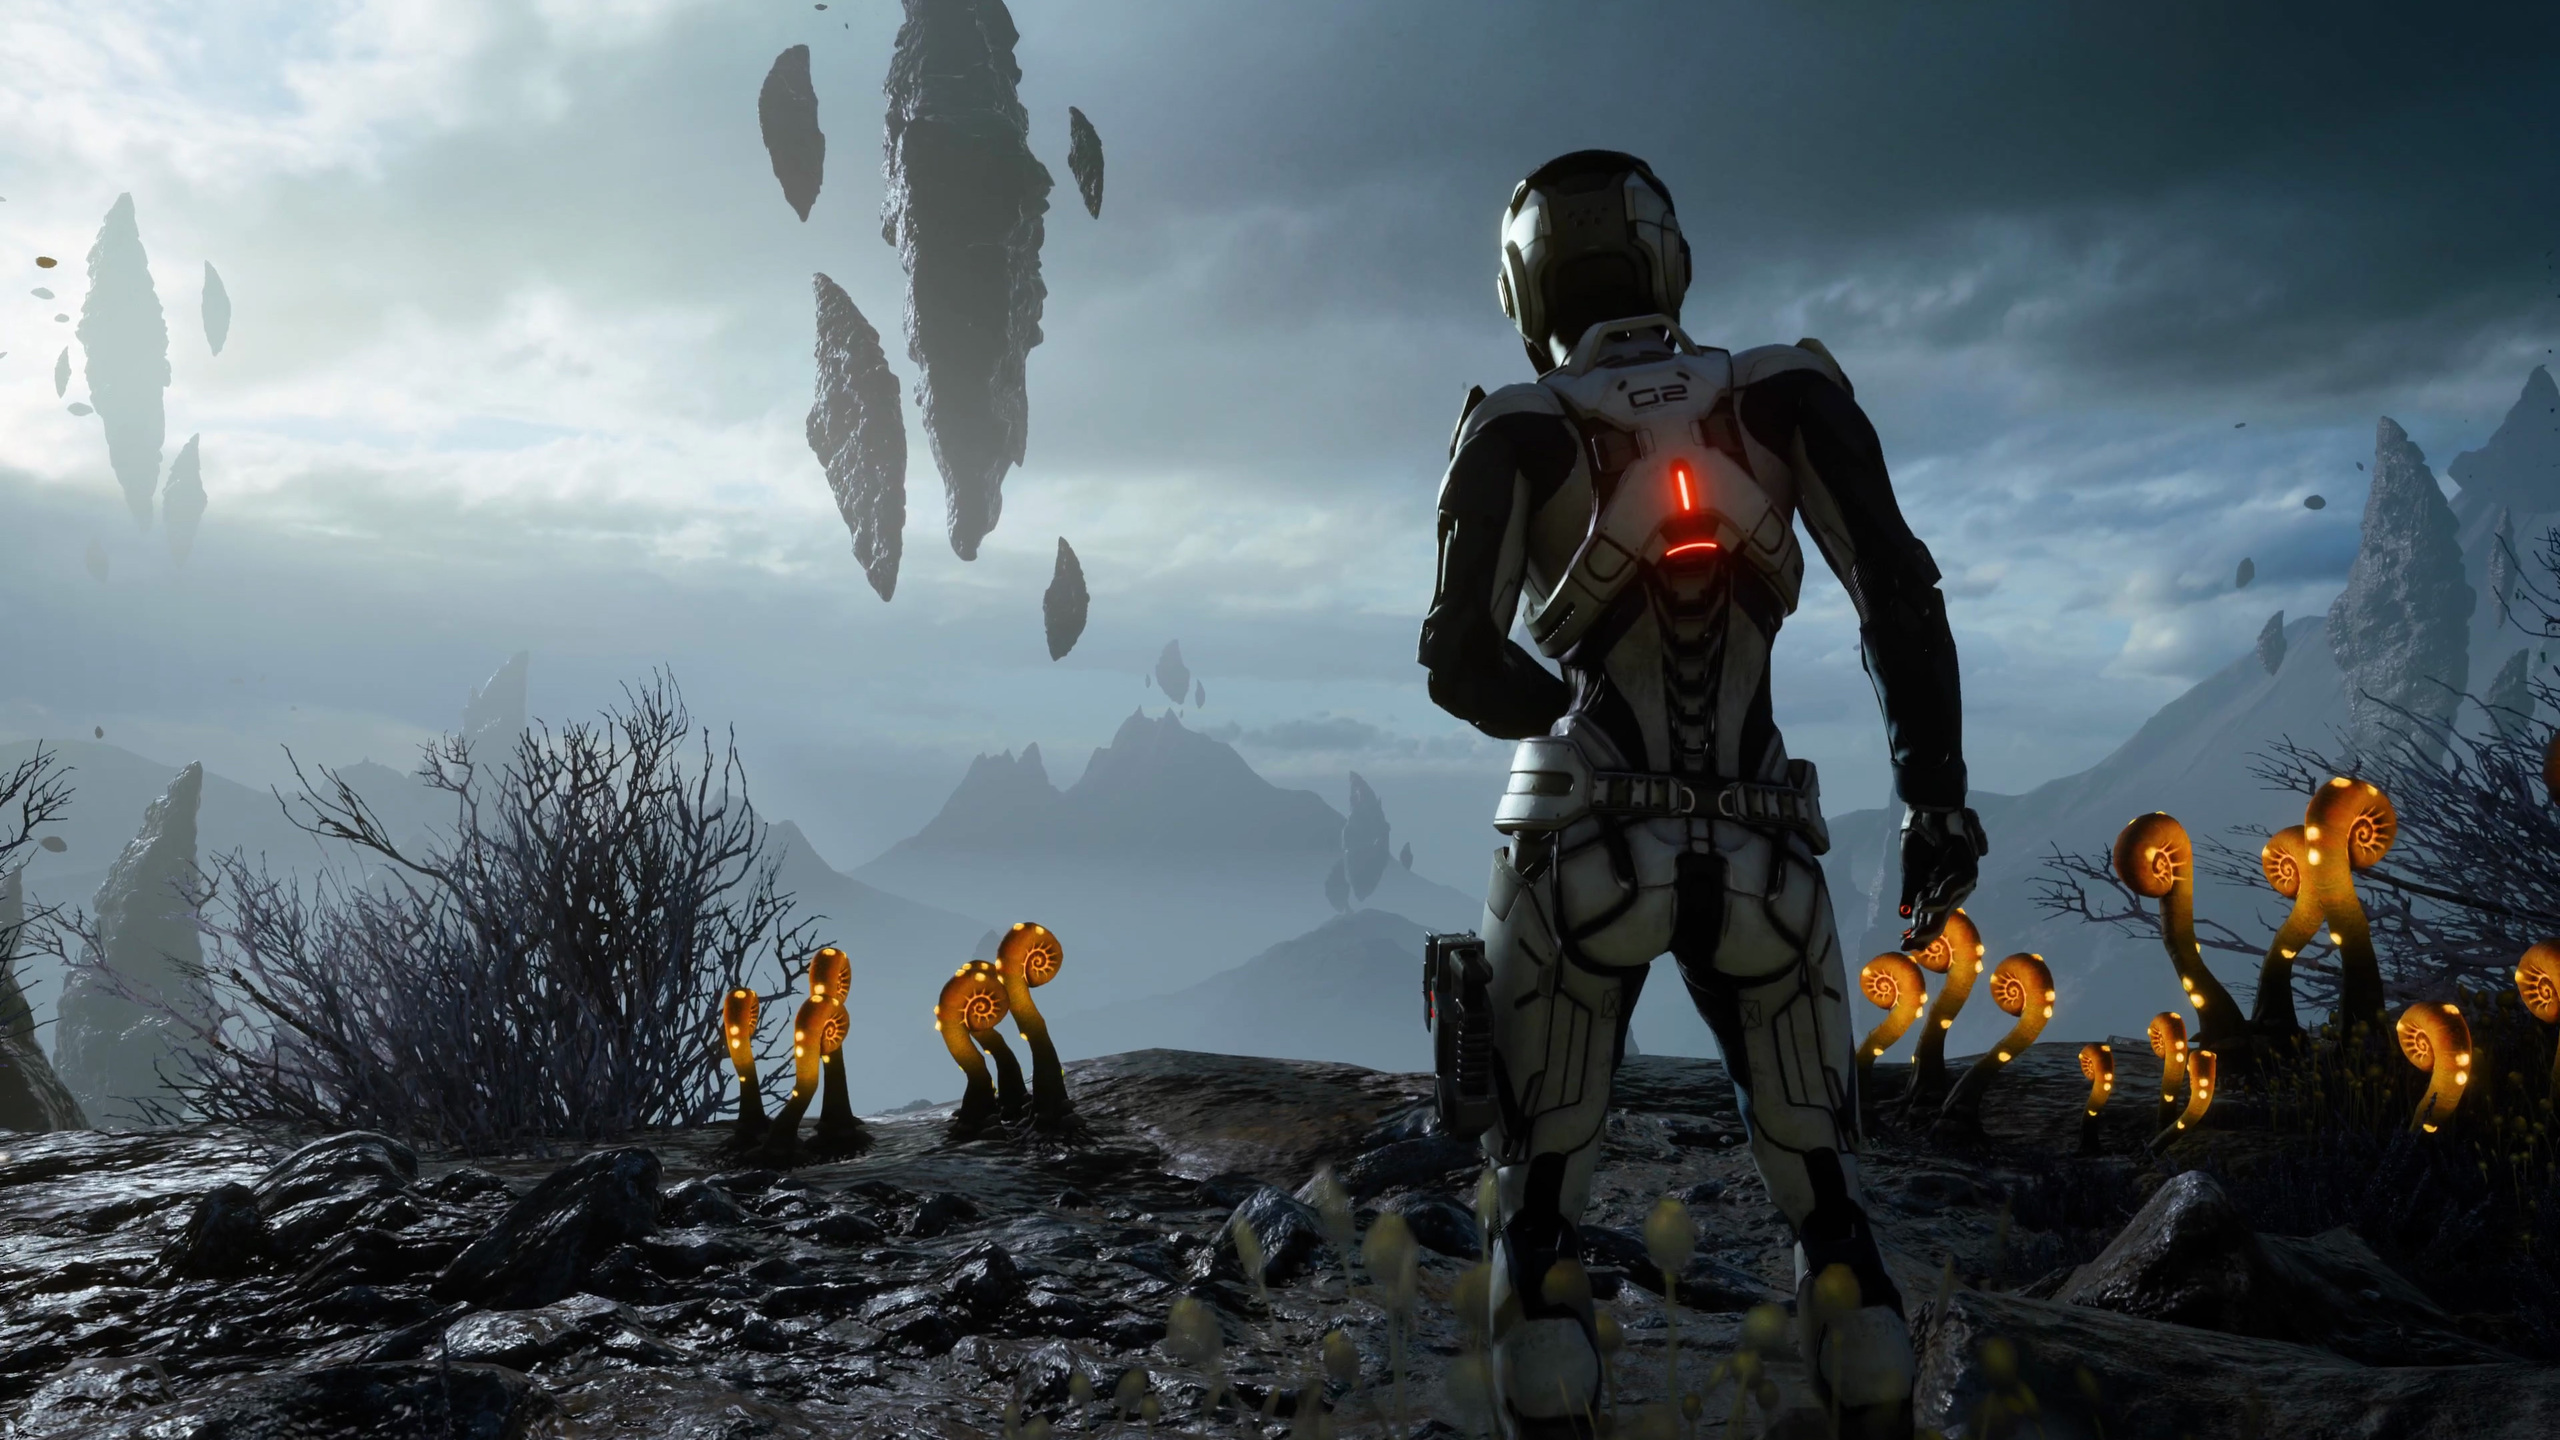 2560x1440 Mass Effect Andromeda Hd Game 1440p Resolution Hd 4k